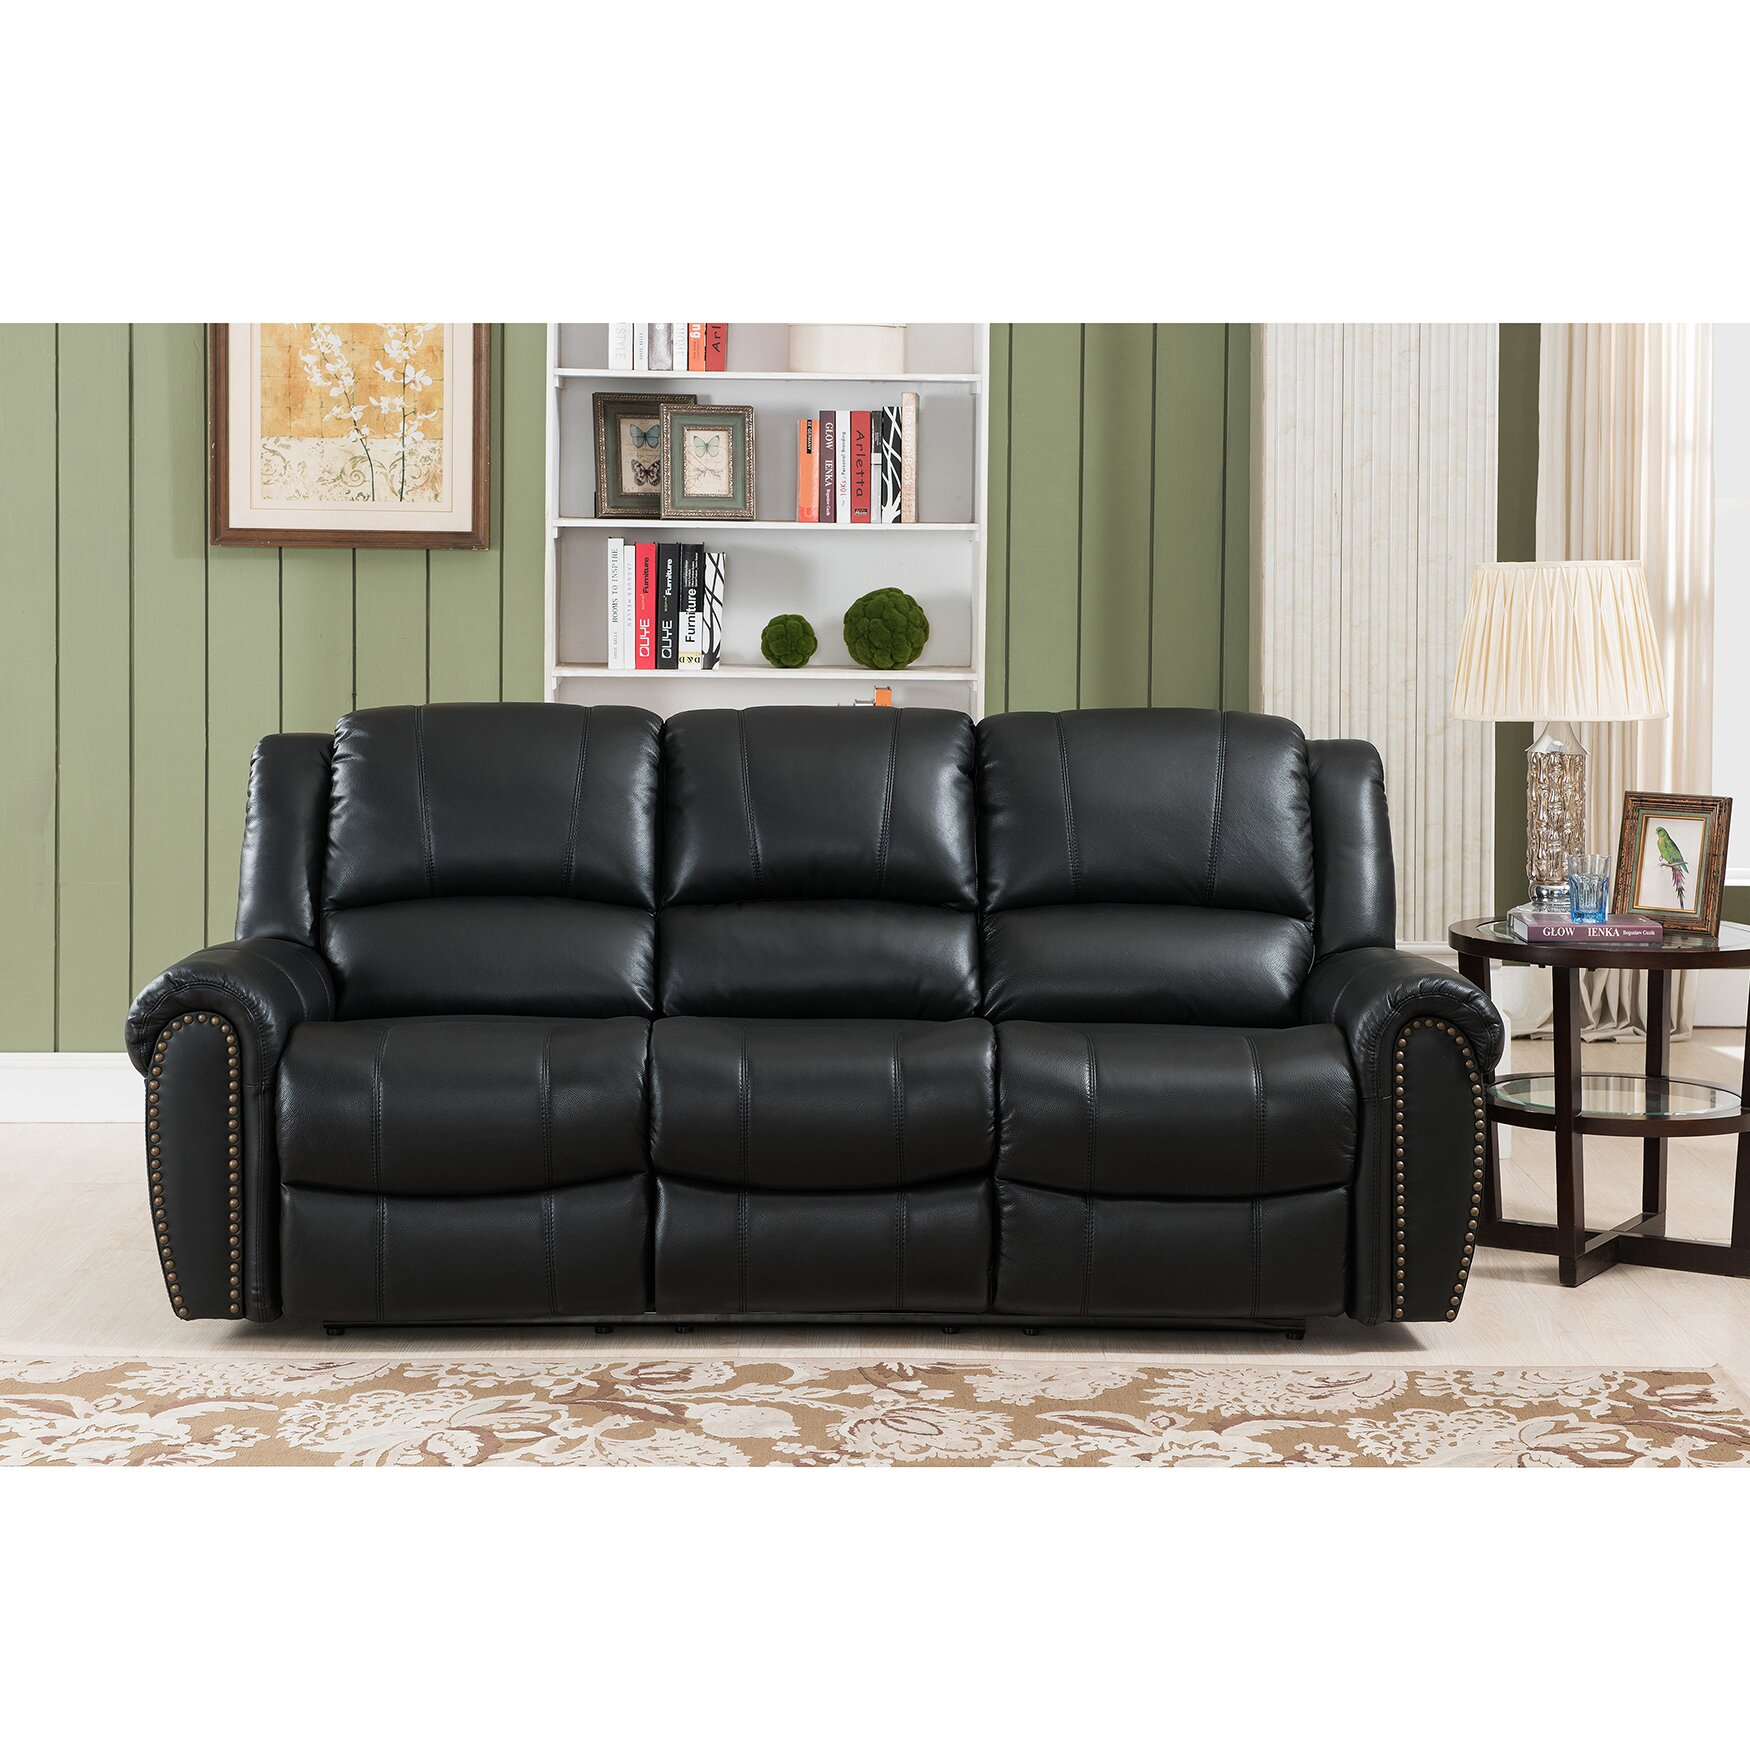 houston 3 piece leather living room set wayfair